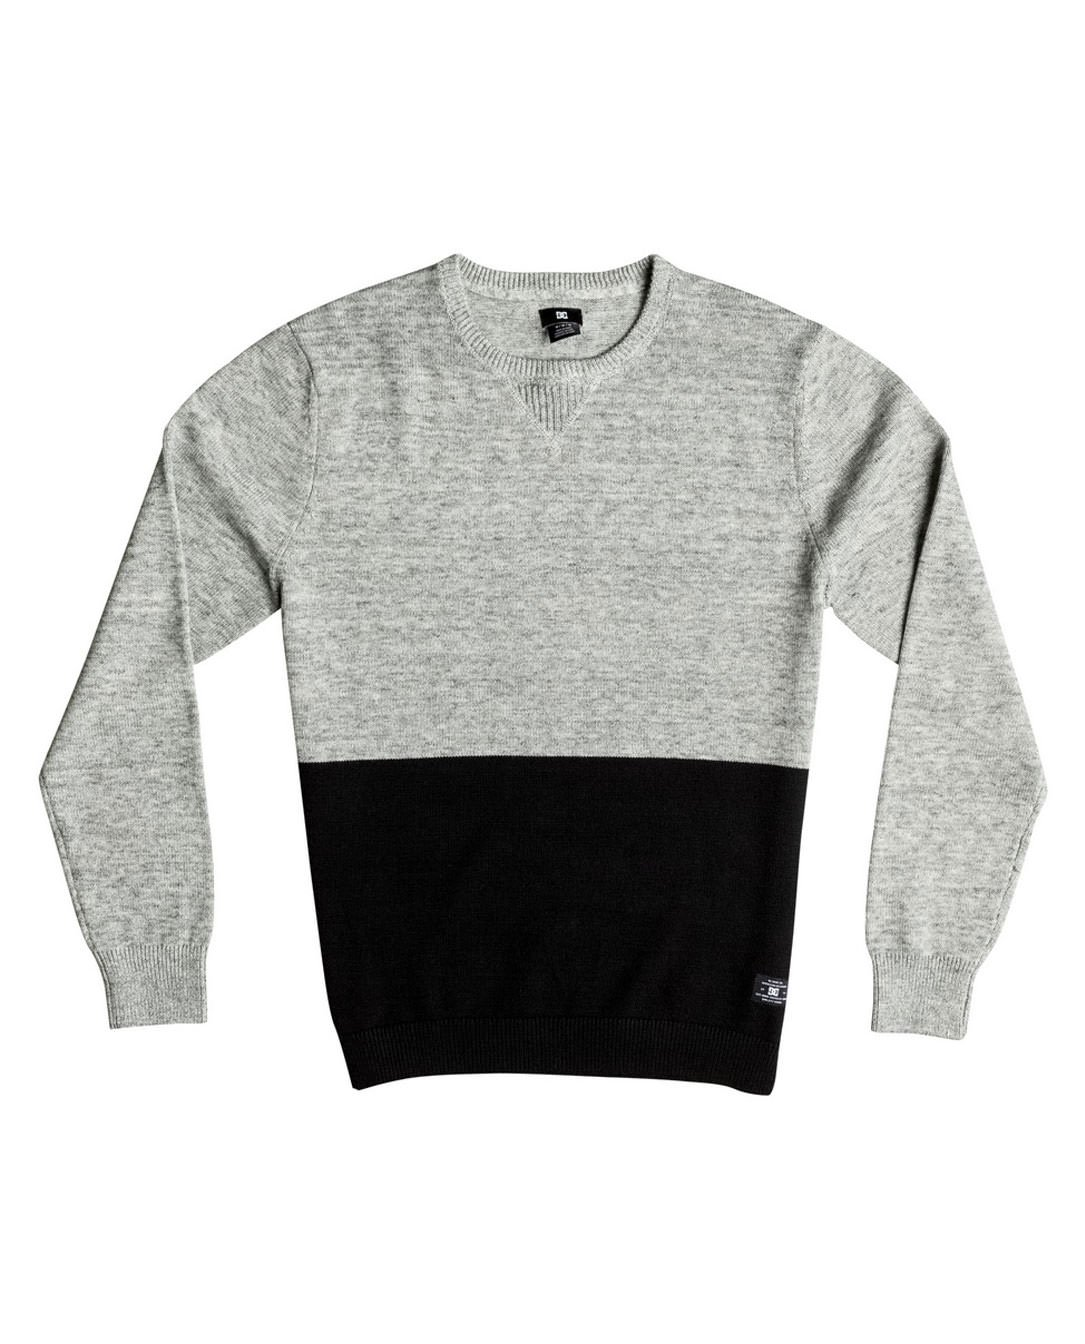 DC SHOES PULLOVER AYLESFORD - LM BOARD STORE